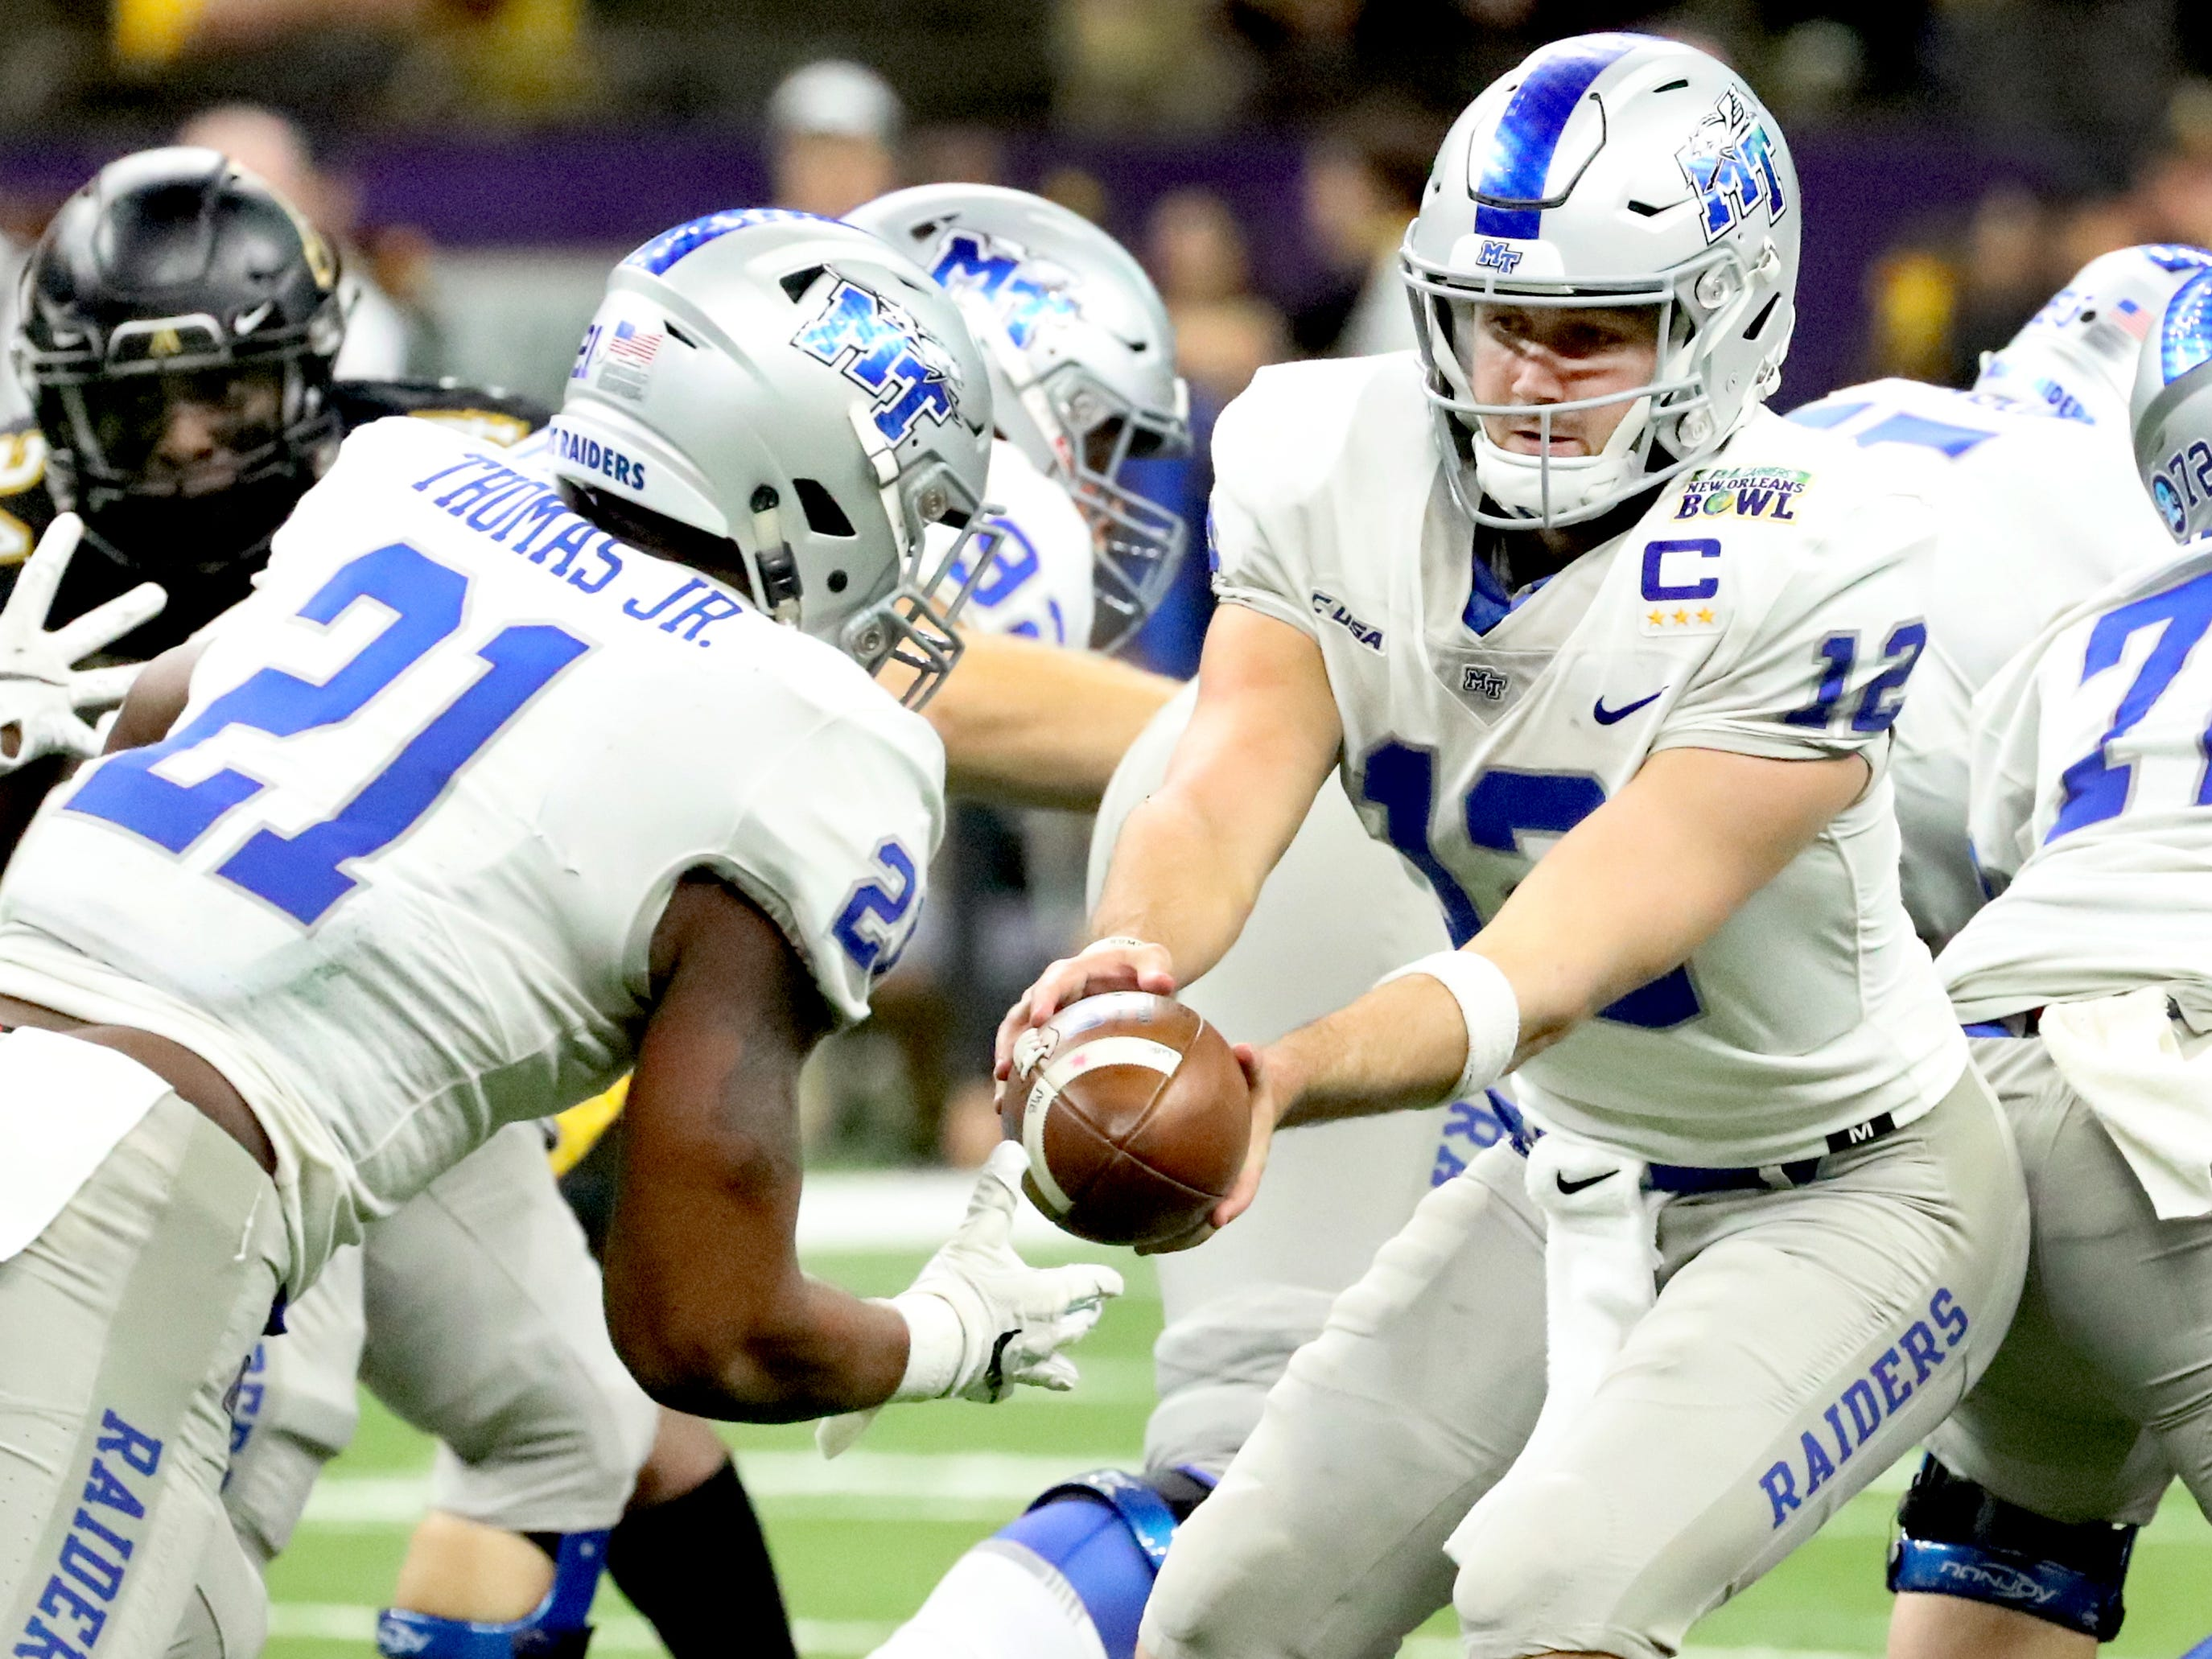 Middle Tennessee Blue Raiders quarterback Brent Stockstill (12) hands ball off to Middle Tennessee Blue Raiders running back Tavares Thomas (21) during the game against Appalachian State Mountaineers on Saturday, Dec. 15, 2018, in the New Orleans Bowl.